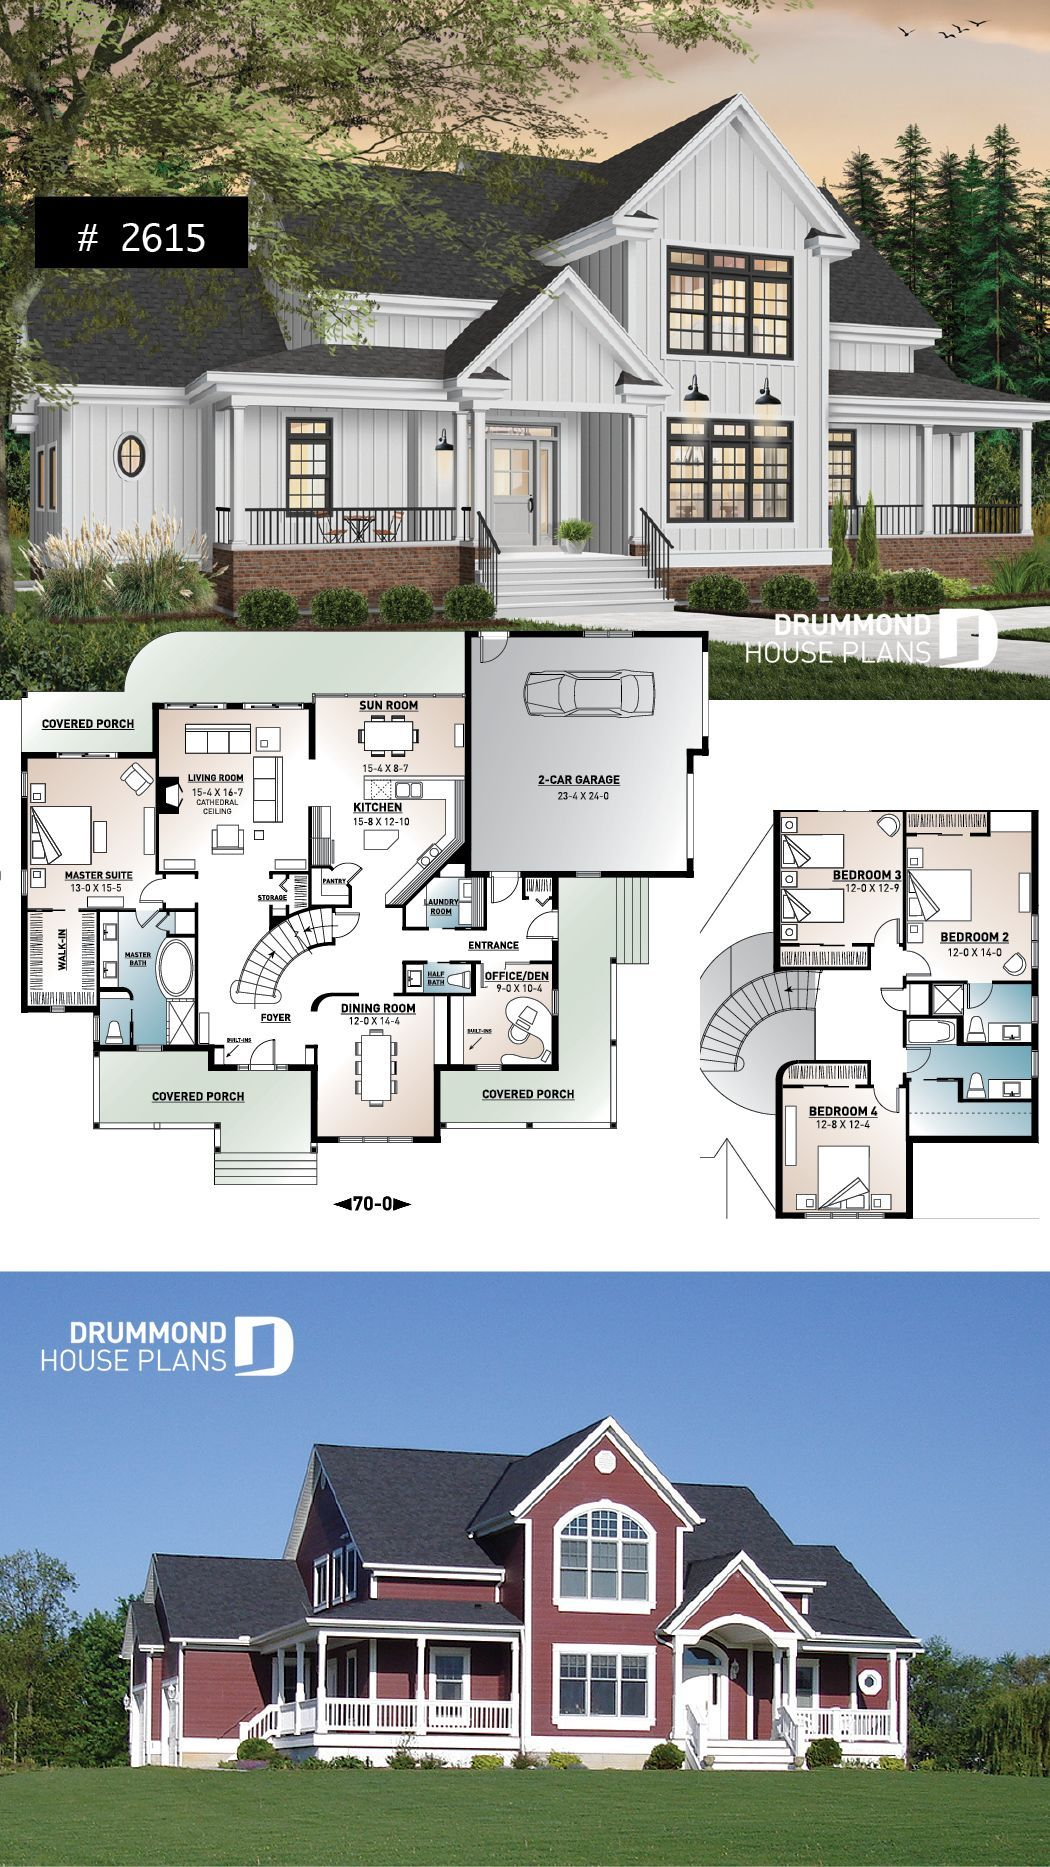 2 master suites house plan 4 bedrooms 4 bathrooms 2car garage large family